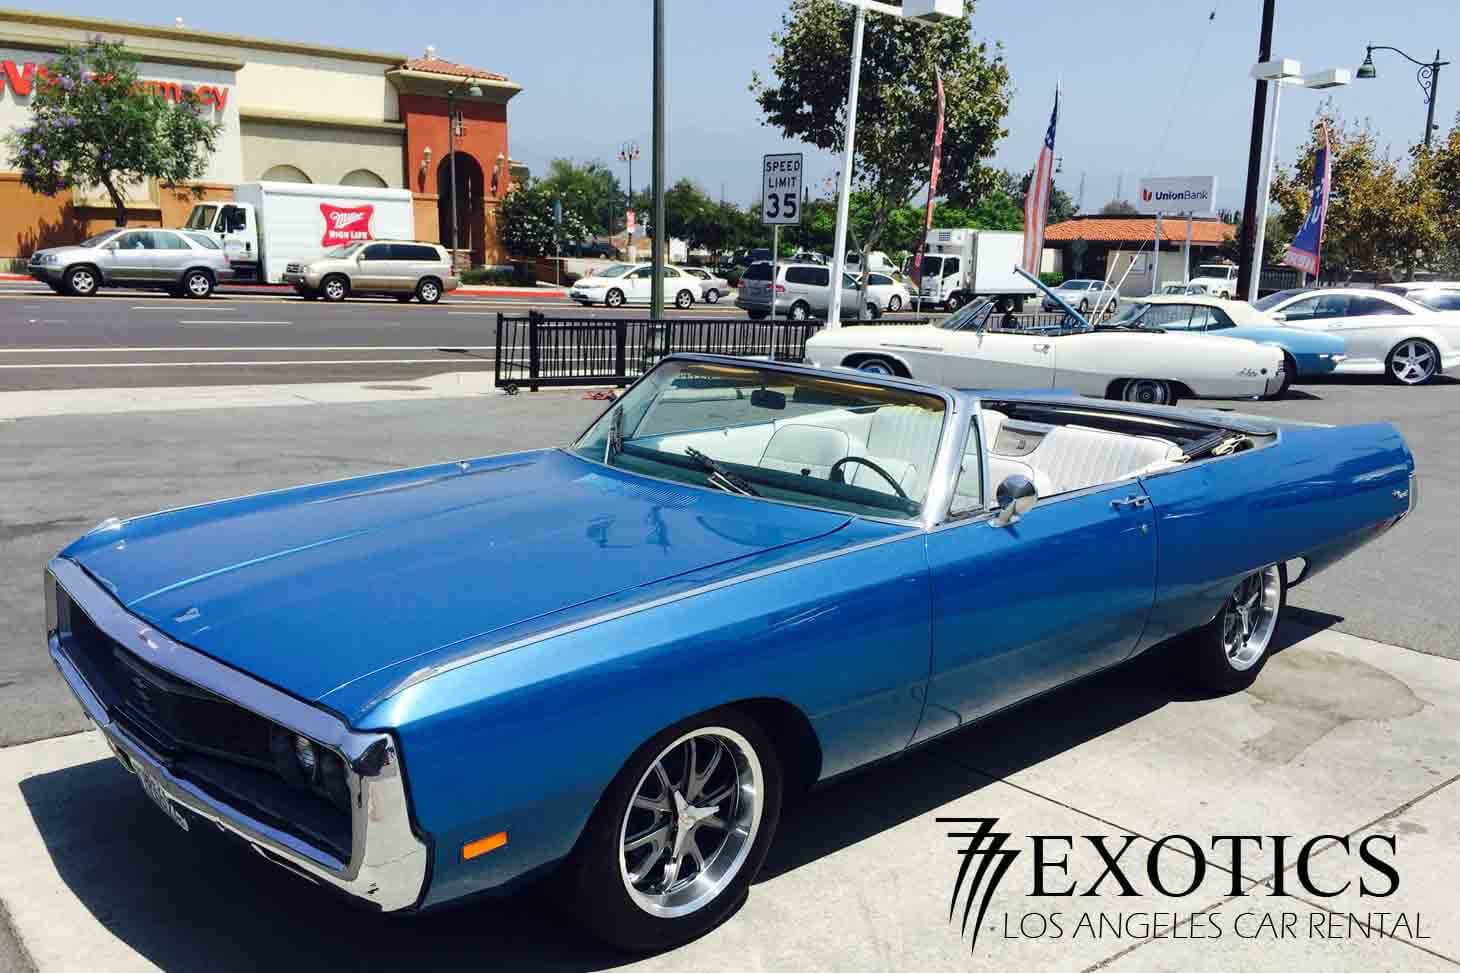 Miles And More Car Rental Classic Car Rental Los Angeles Las Vegas Muscle Cars For Rent